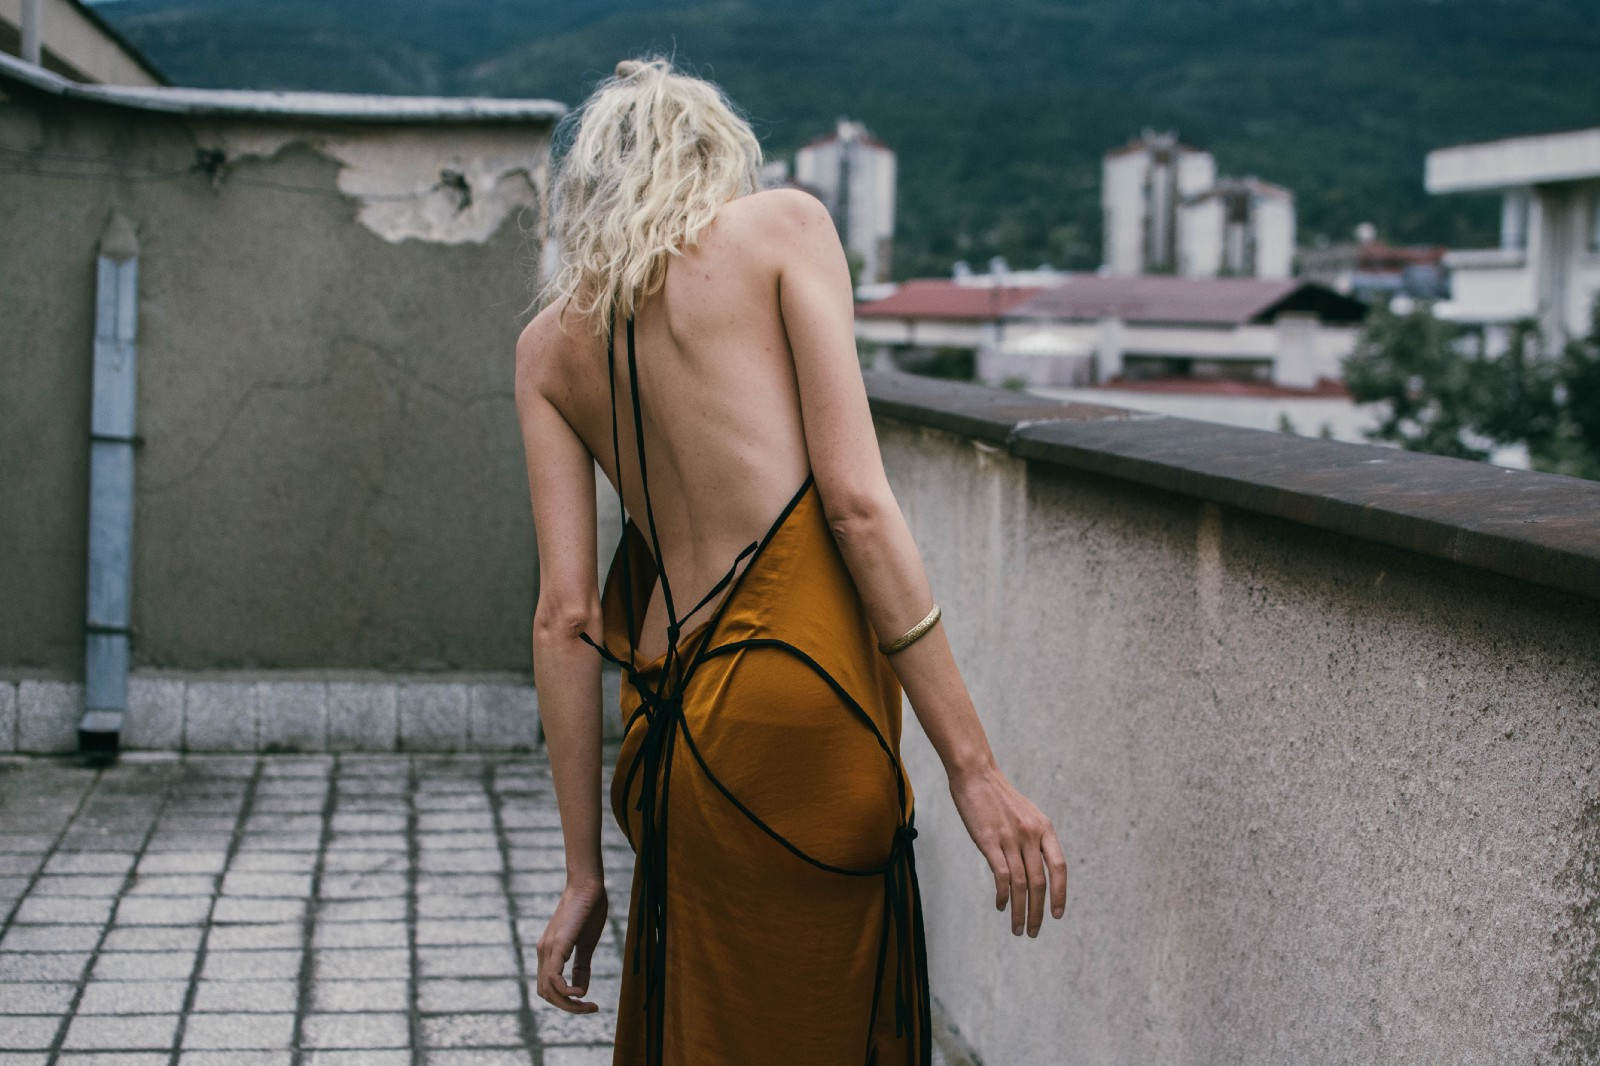 Bareback slip on maxi golden dress